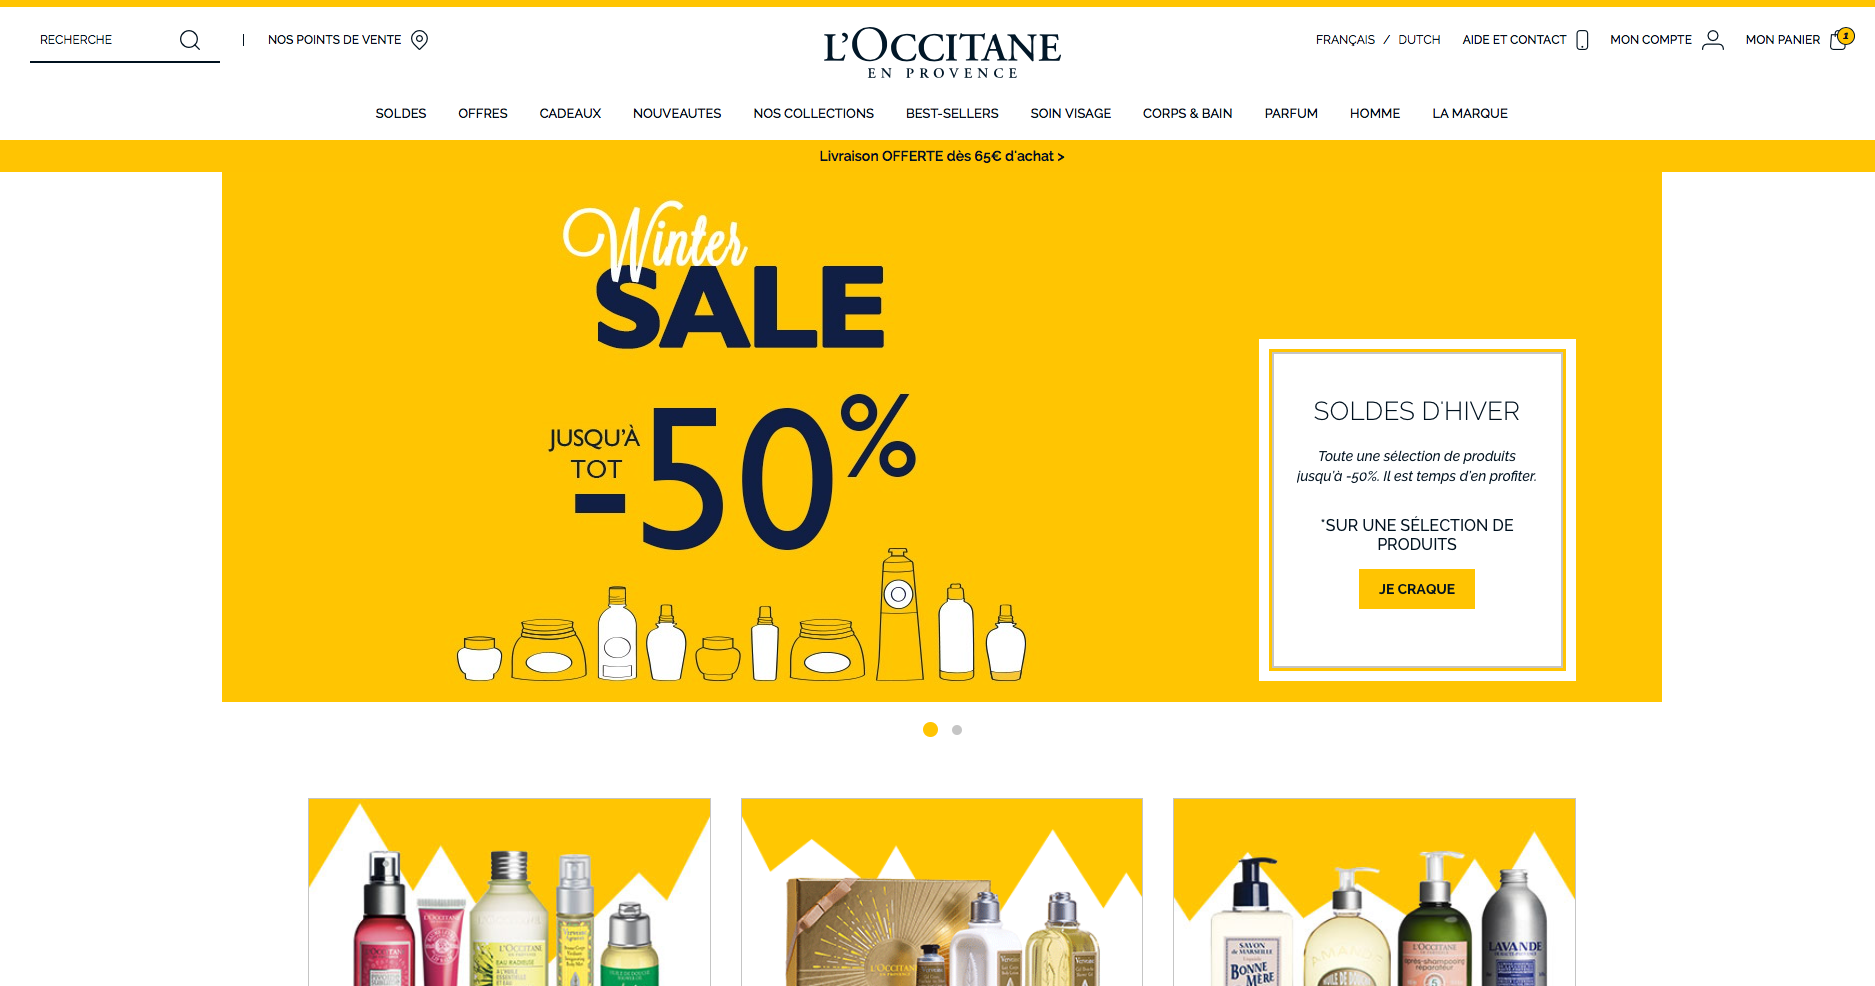 Whether or not you've been lucky enough to visit idyllic southern France, L'Occitane en Provence brings facial products, body washes and lotions, and even haircare products sourced from quality French ingredients to your computer screen. L'Occitane en Provence also sells skincare, beauty, and hair care products for men.